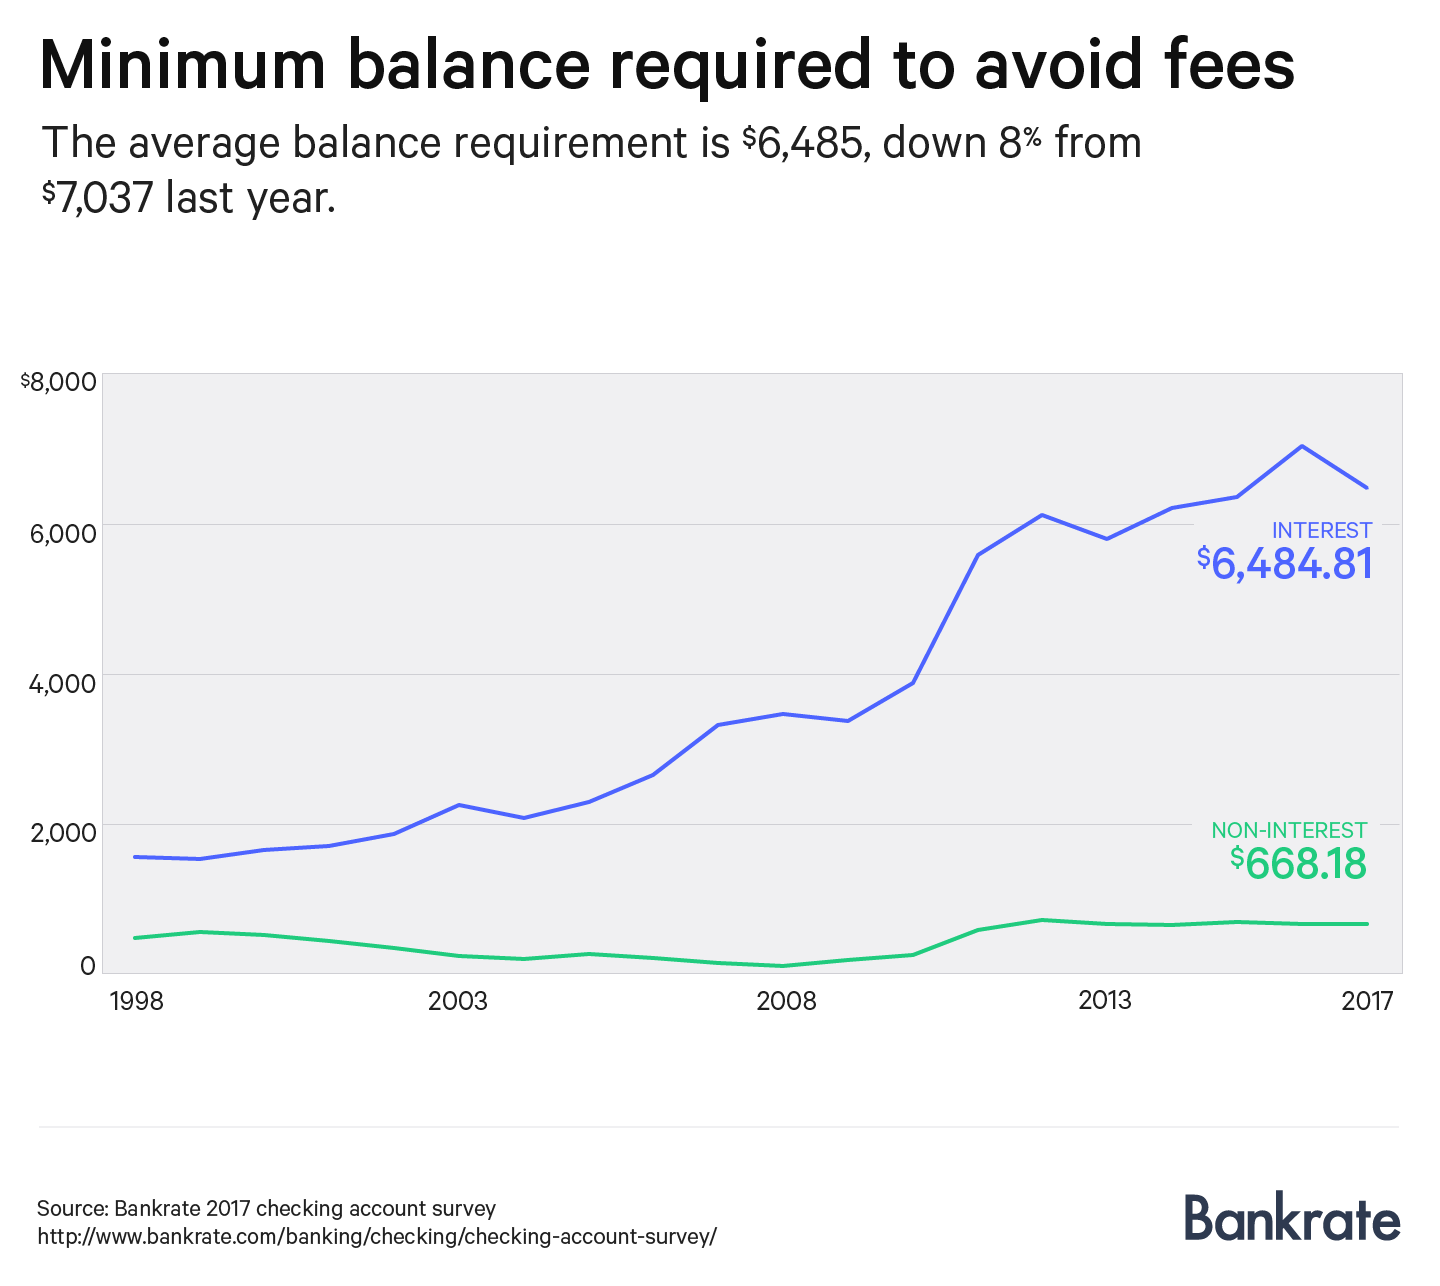 Chart showing the minimum balance needed to avoid monthly service fees on checking accounts.